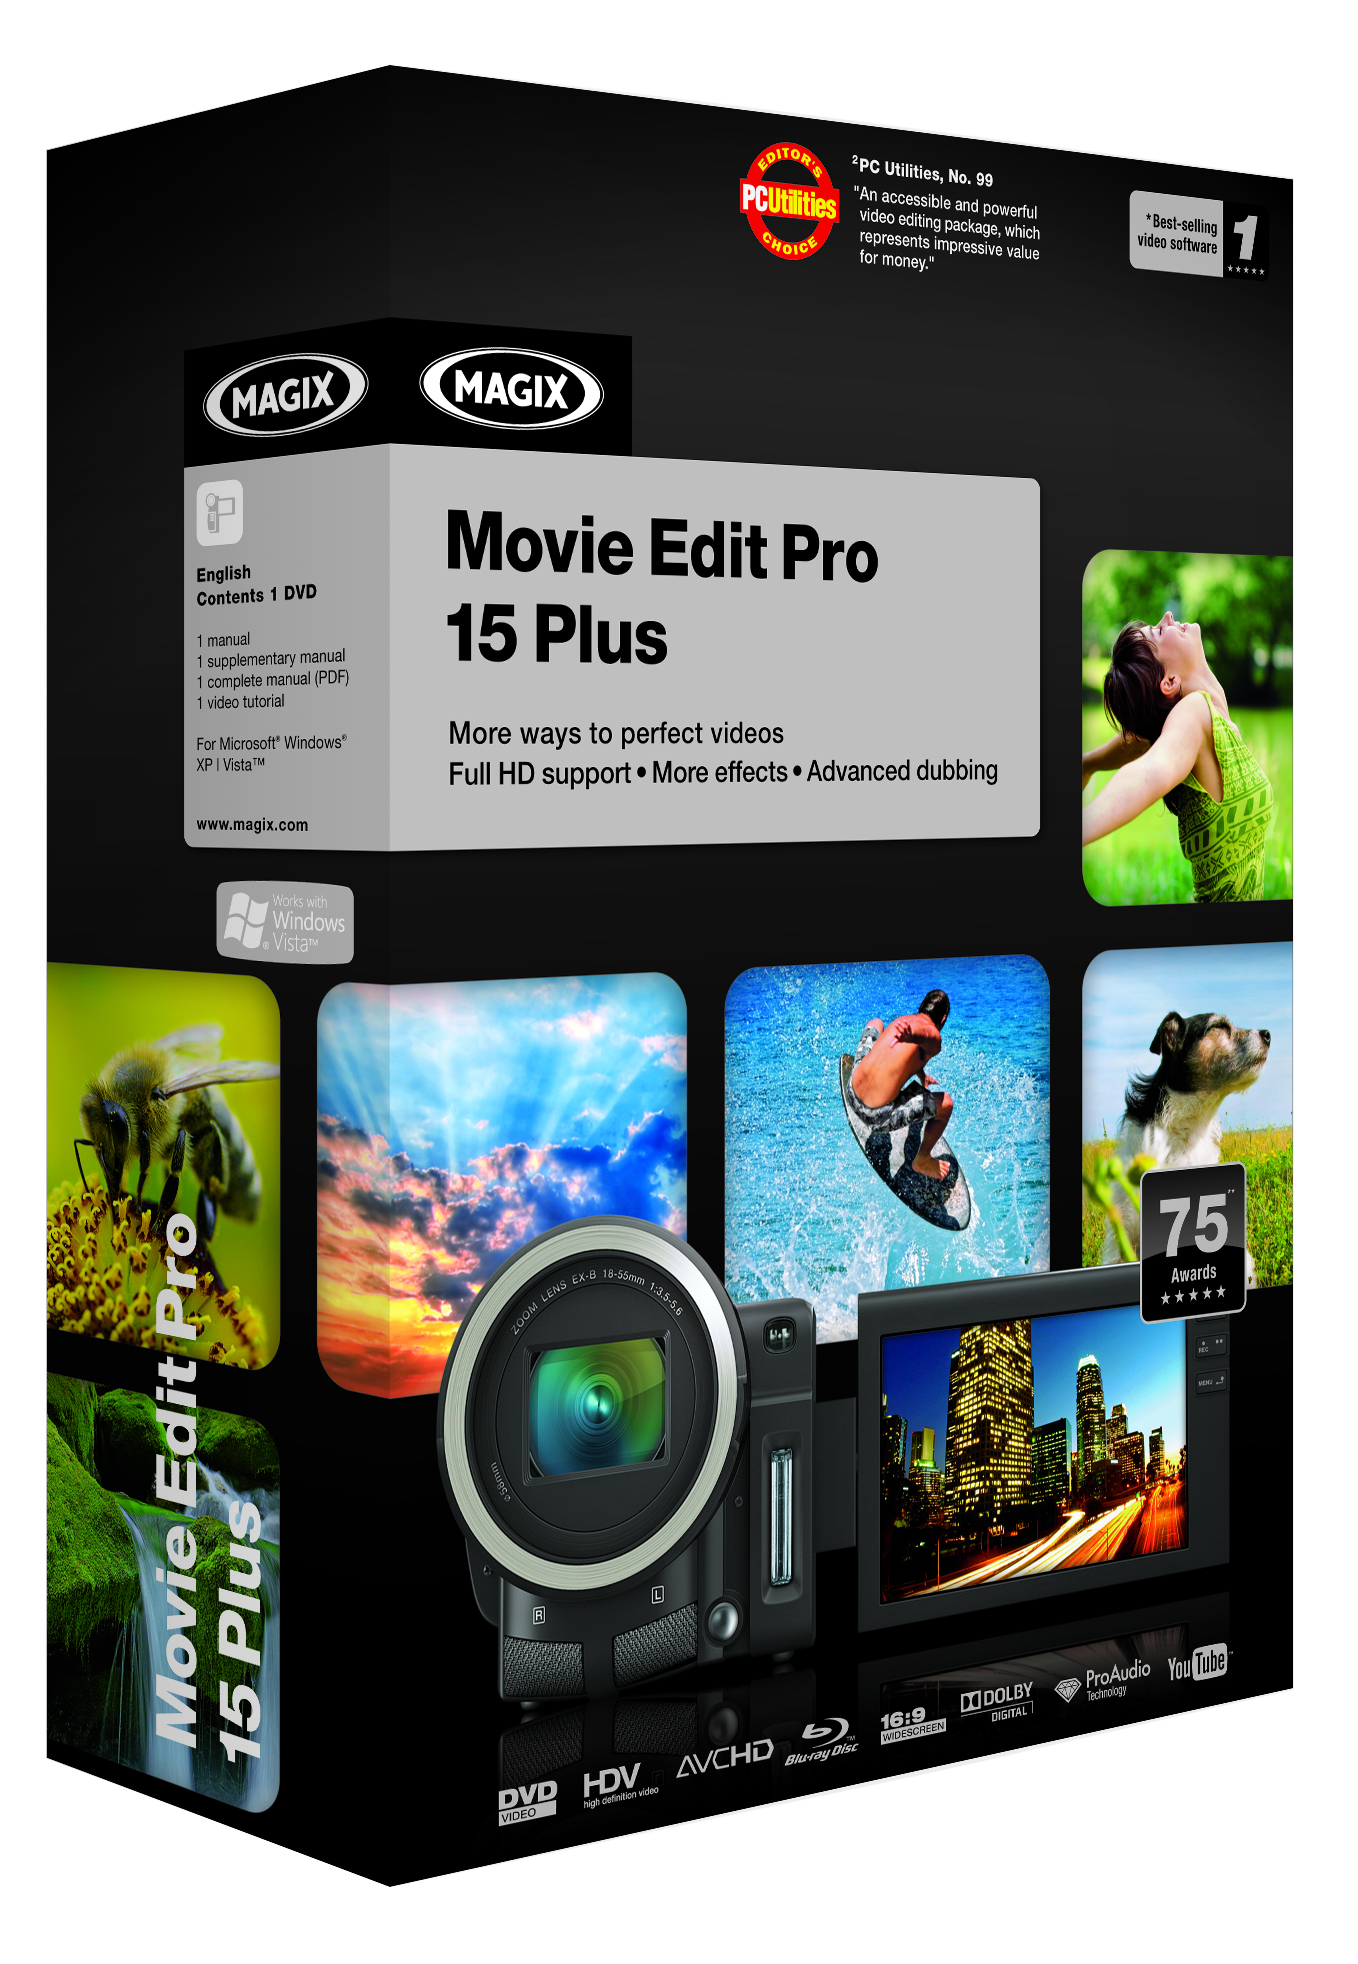 Magix Movie Edit Pro picture or screenshot